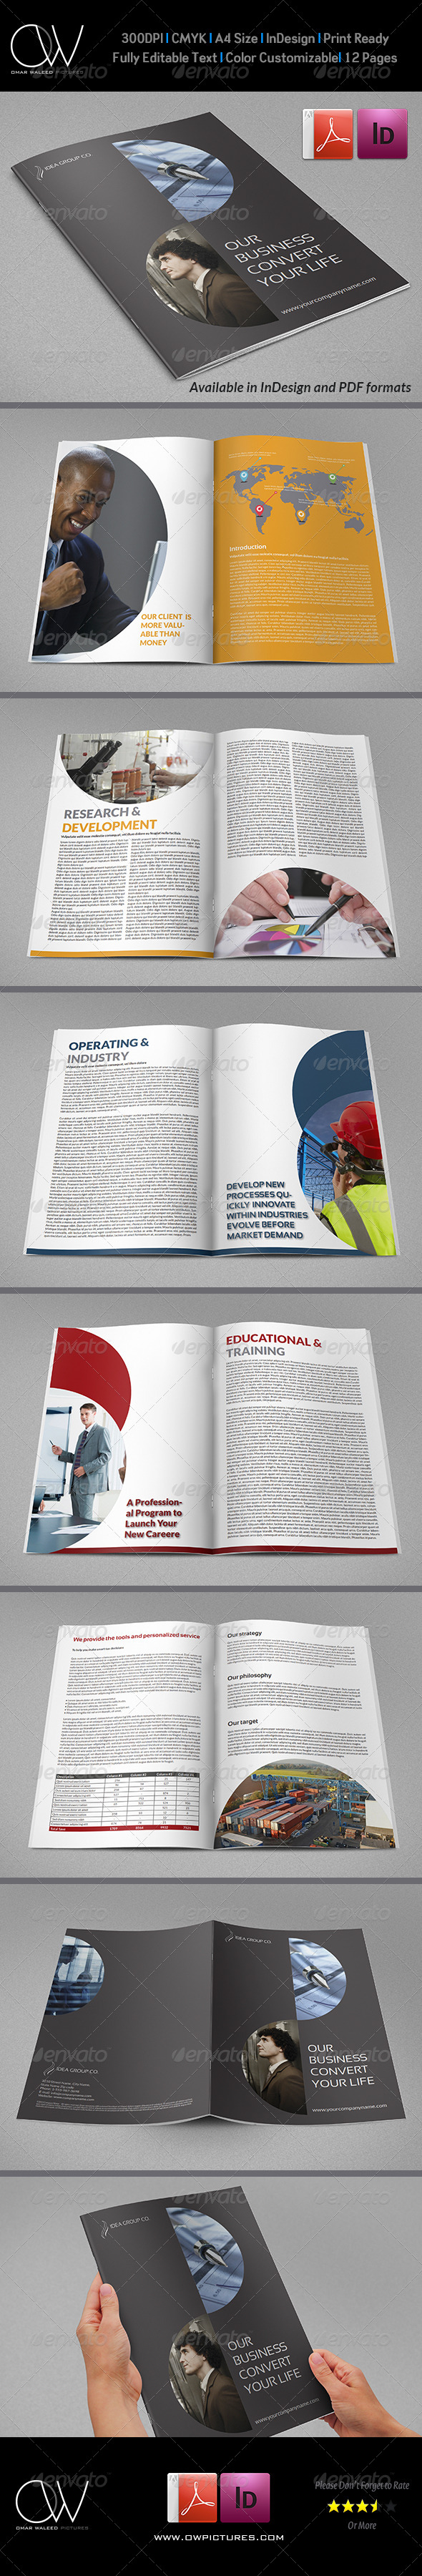 GraphicRiver Corporate Brochure Template Vol.20 12 Pages 6636339